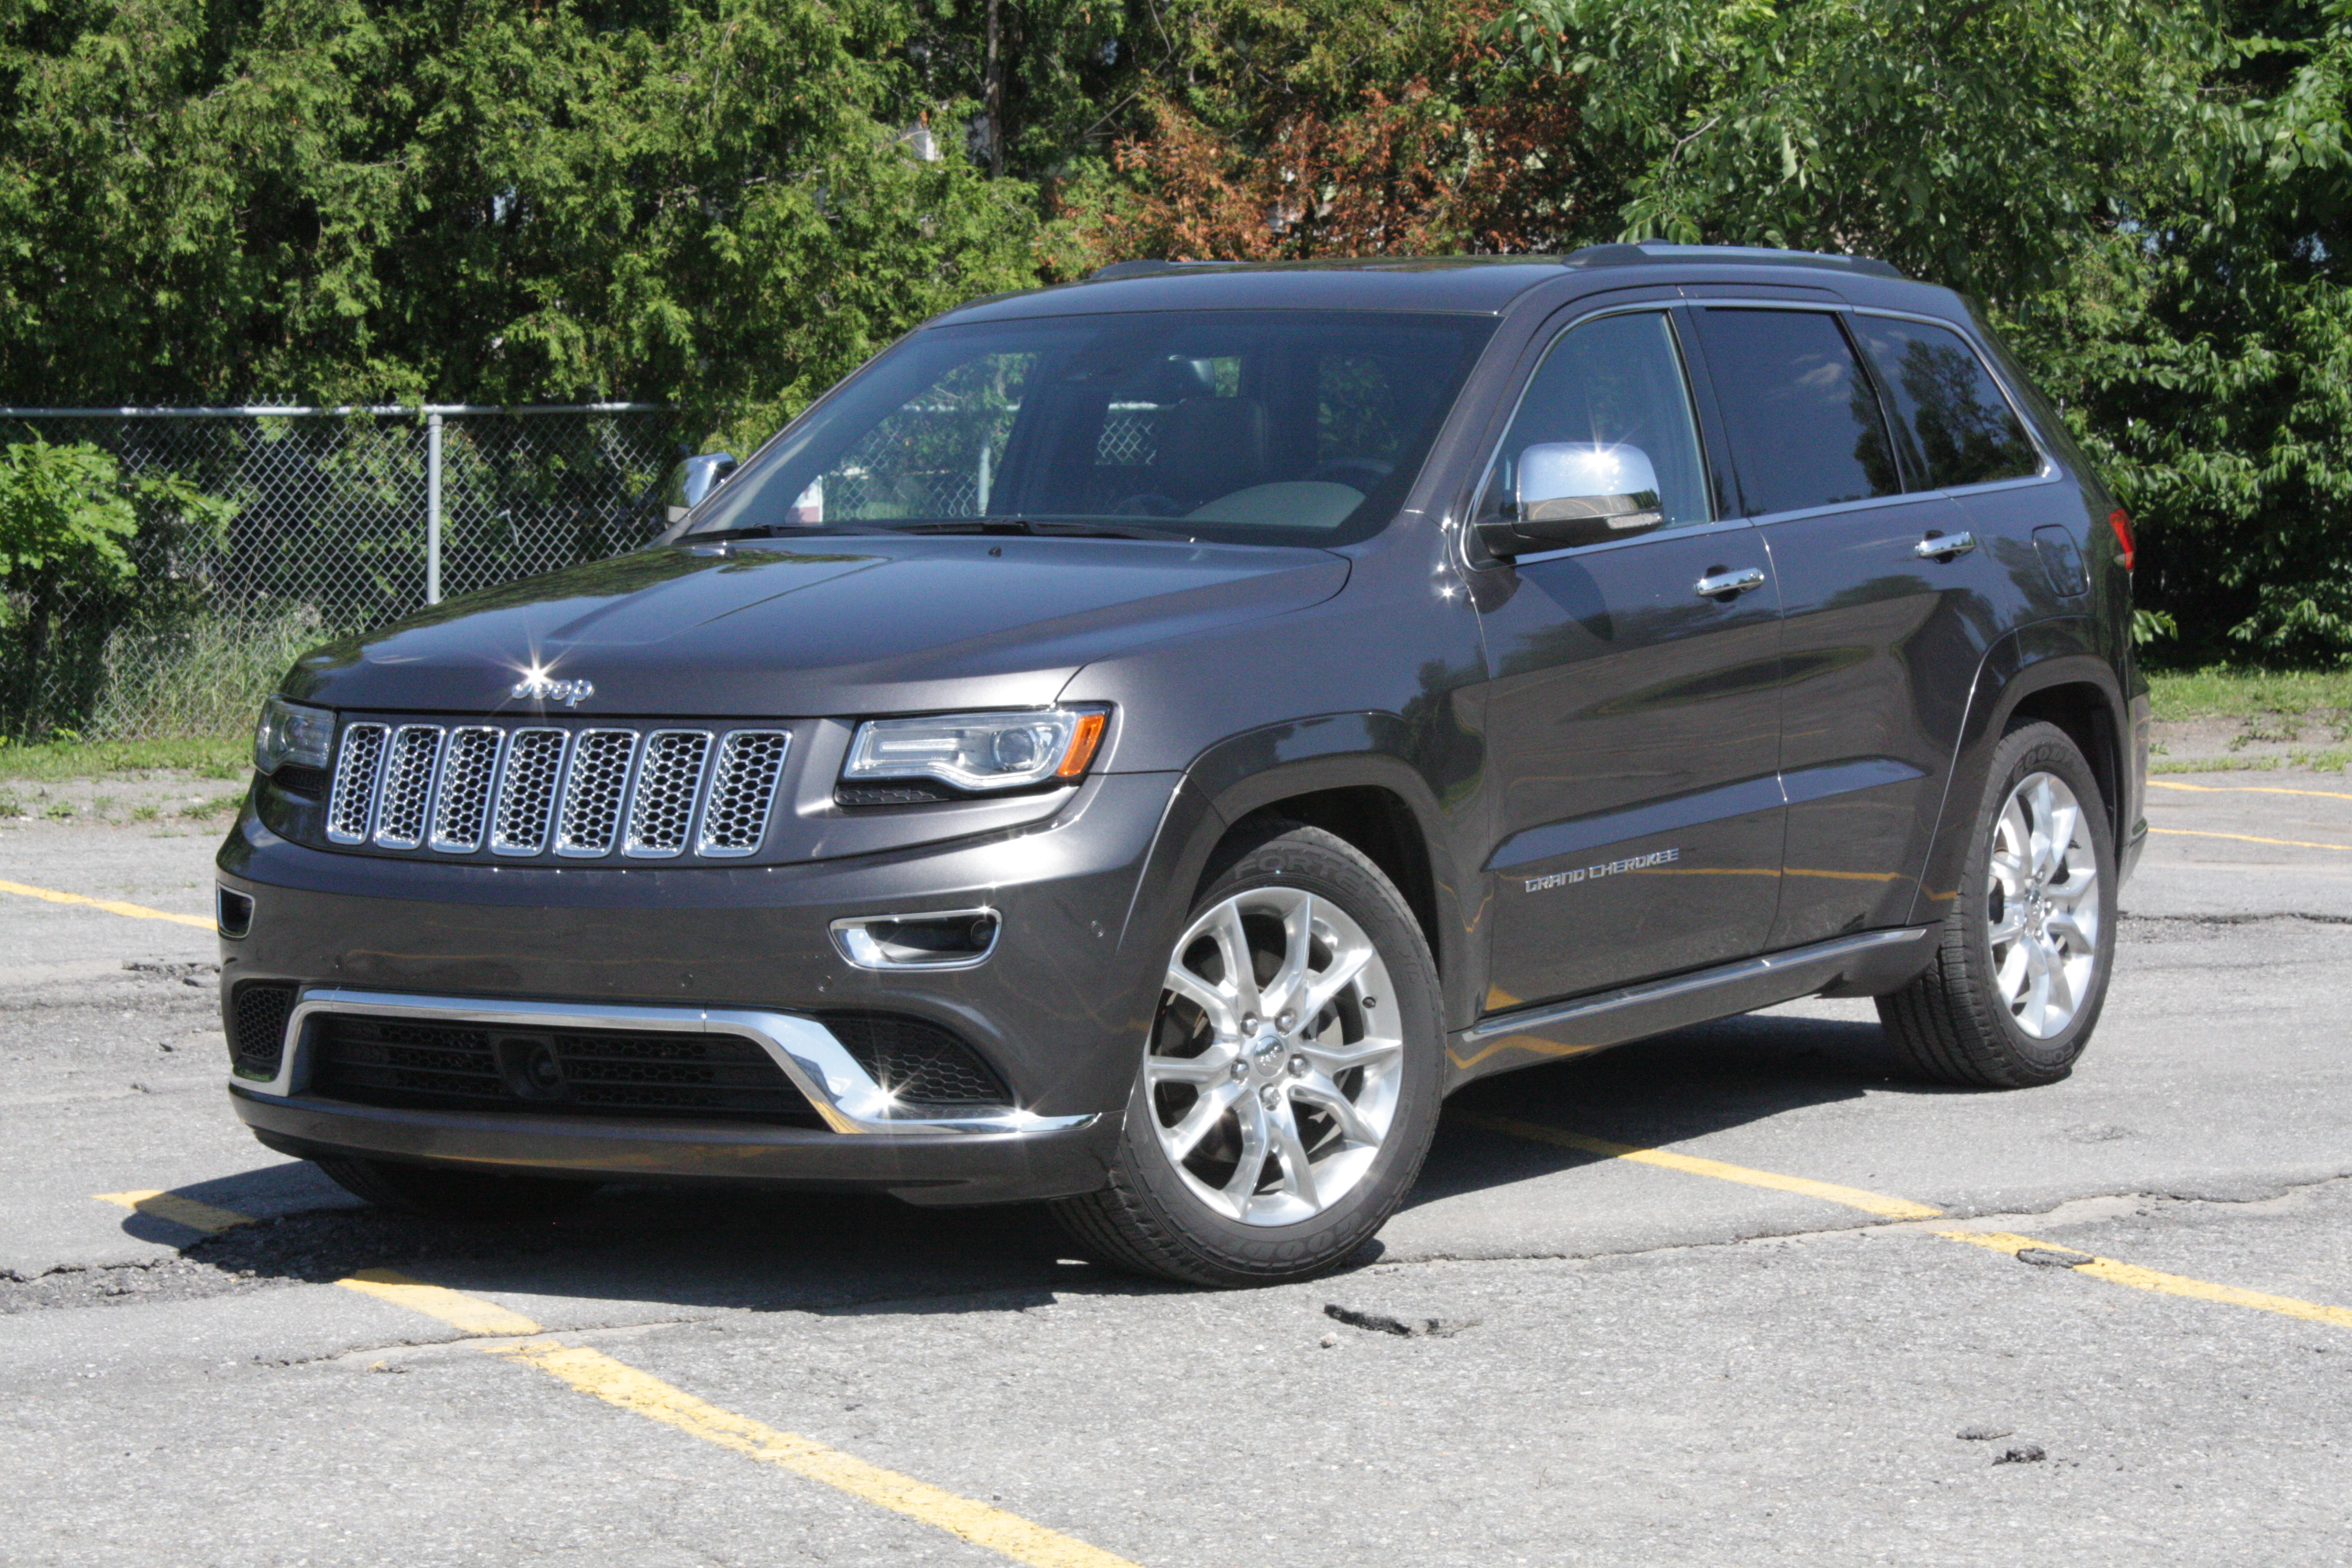 jeep grand cherokee under investigation for rollaway risk. Black Bedroom Furniture Sets. Home Design Ideas